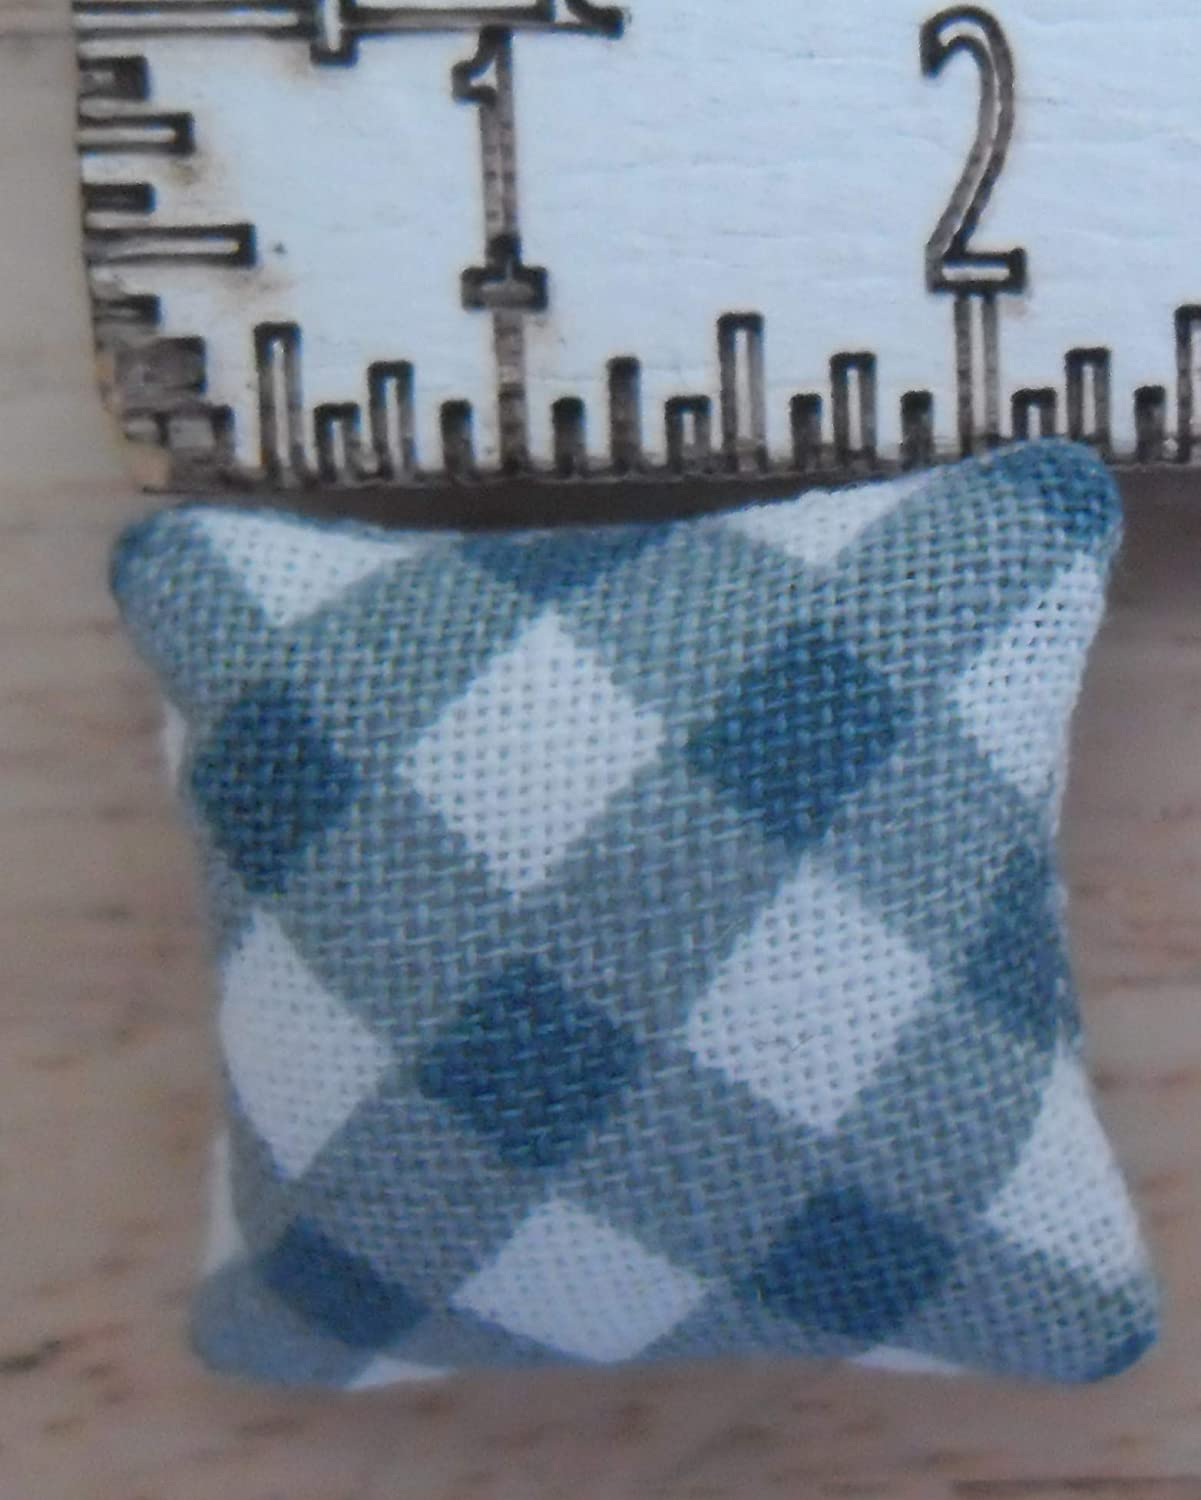 1//24th Scale Dolls House Printed Fabric Cushions Check Pattern Shades of Blue /& White